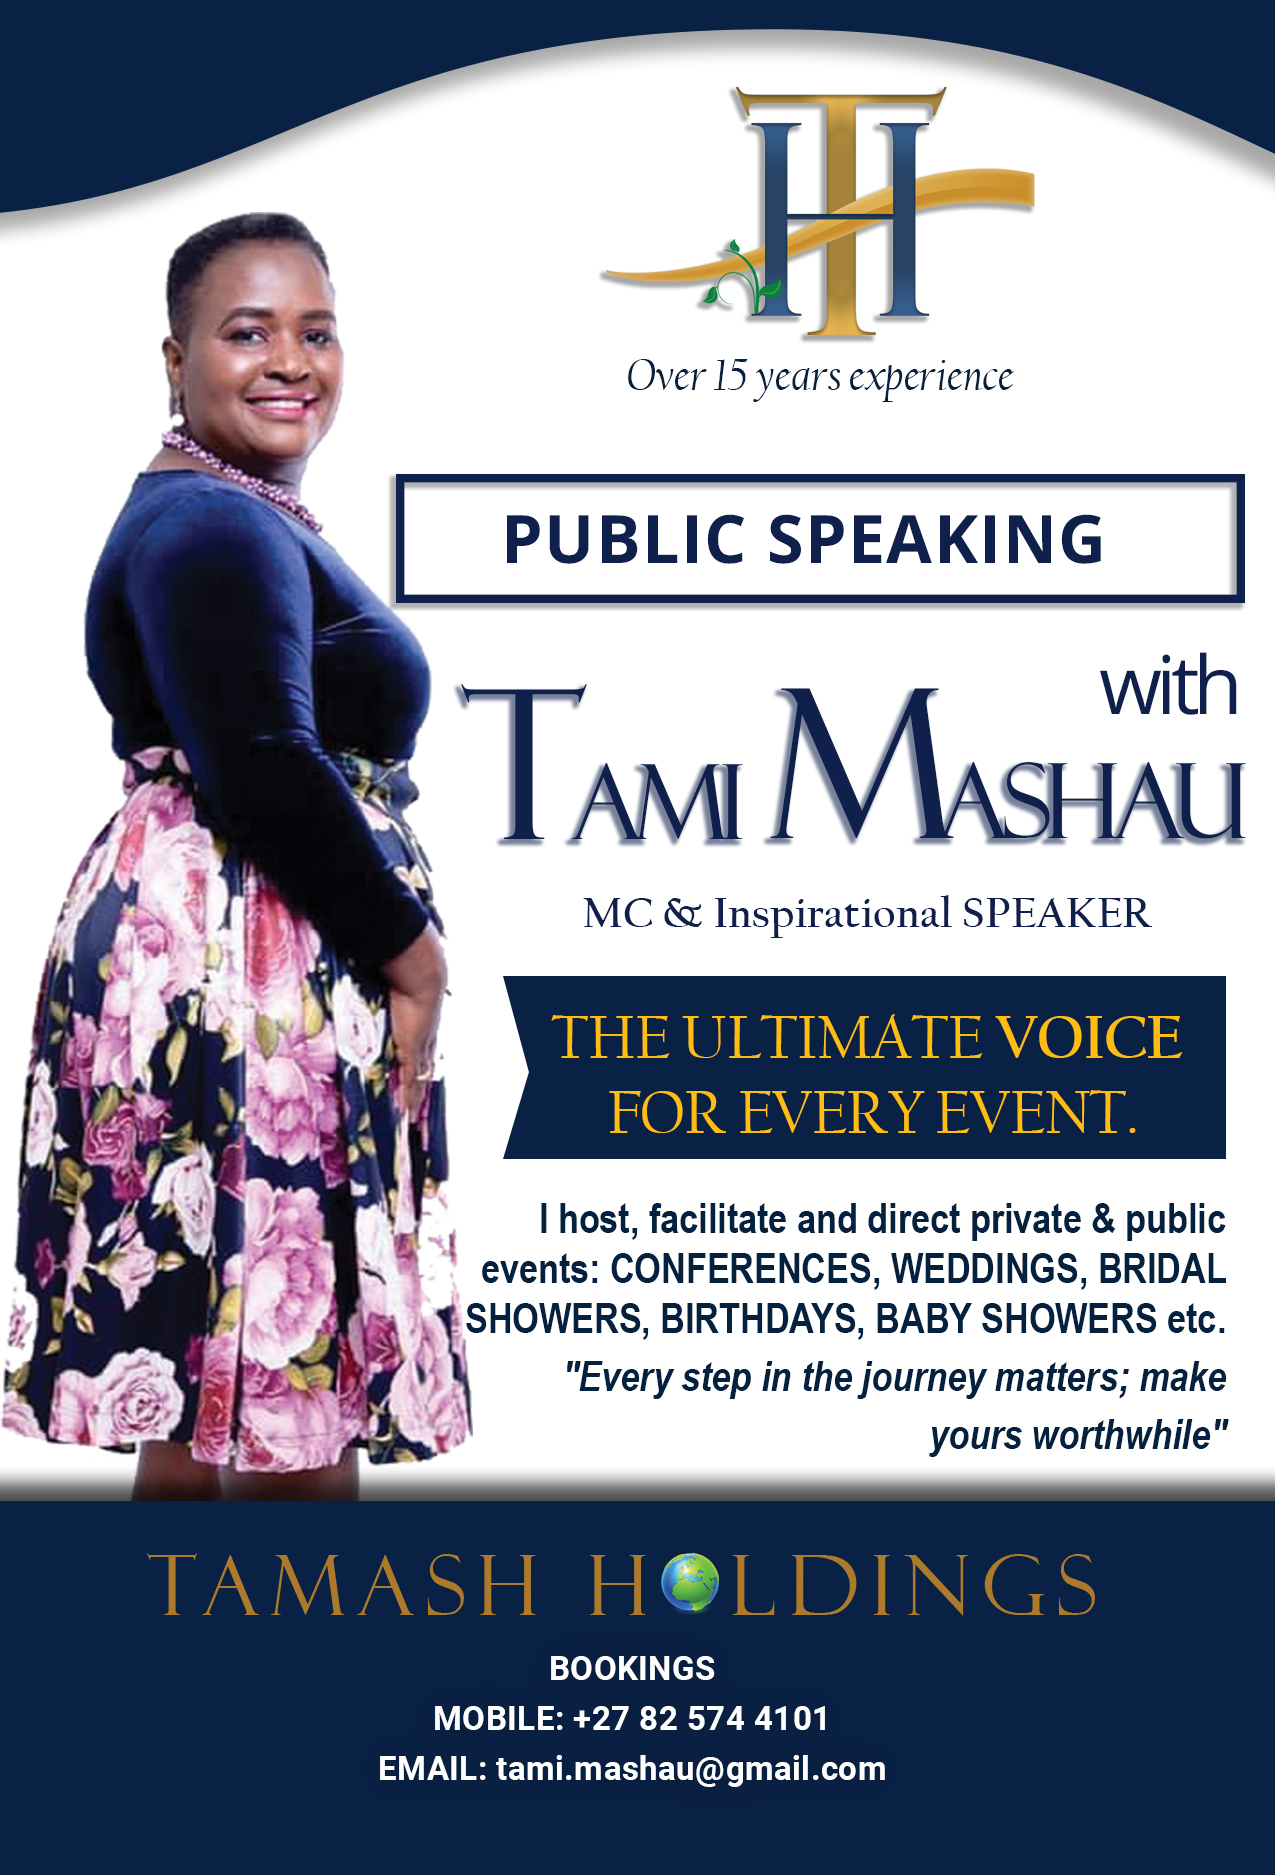 Flyer Tamash Holdings - MC Blue Rev 2